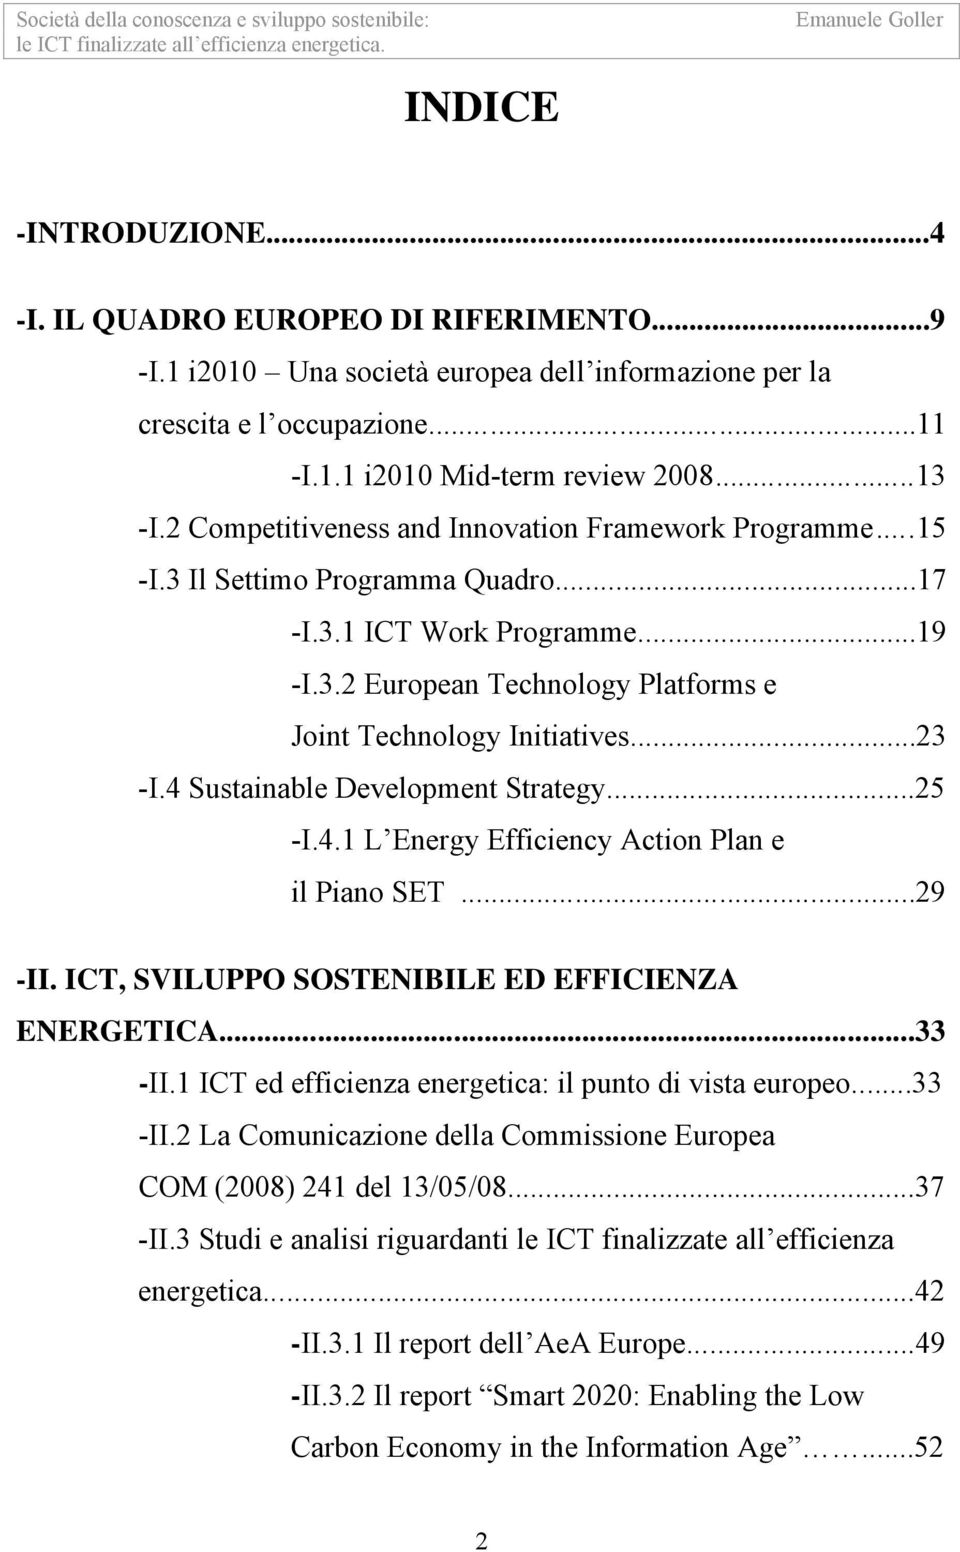 ..23 -I.4 Sustainable Development Strategy...25 -I.4.1 L Energy Efficiency Action Plan e il Piano SET...29 -II. ICT, SVILUPPO SOSTENIBILE ED EFFICIENZA ENERGETICA......33 -II.